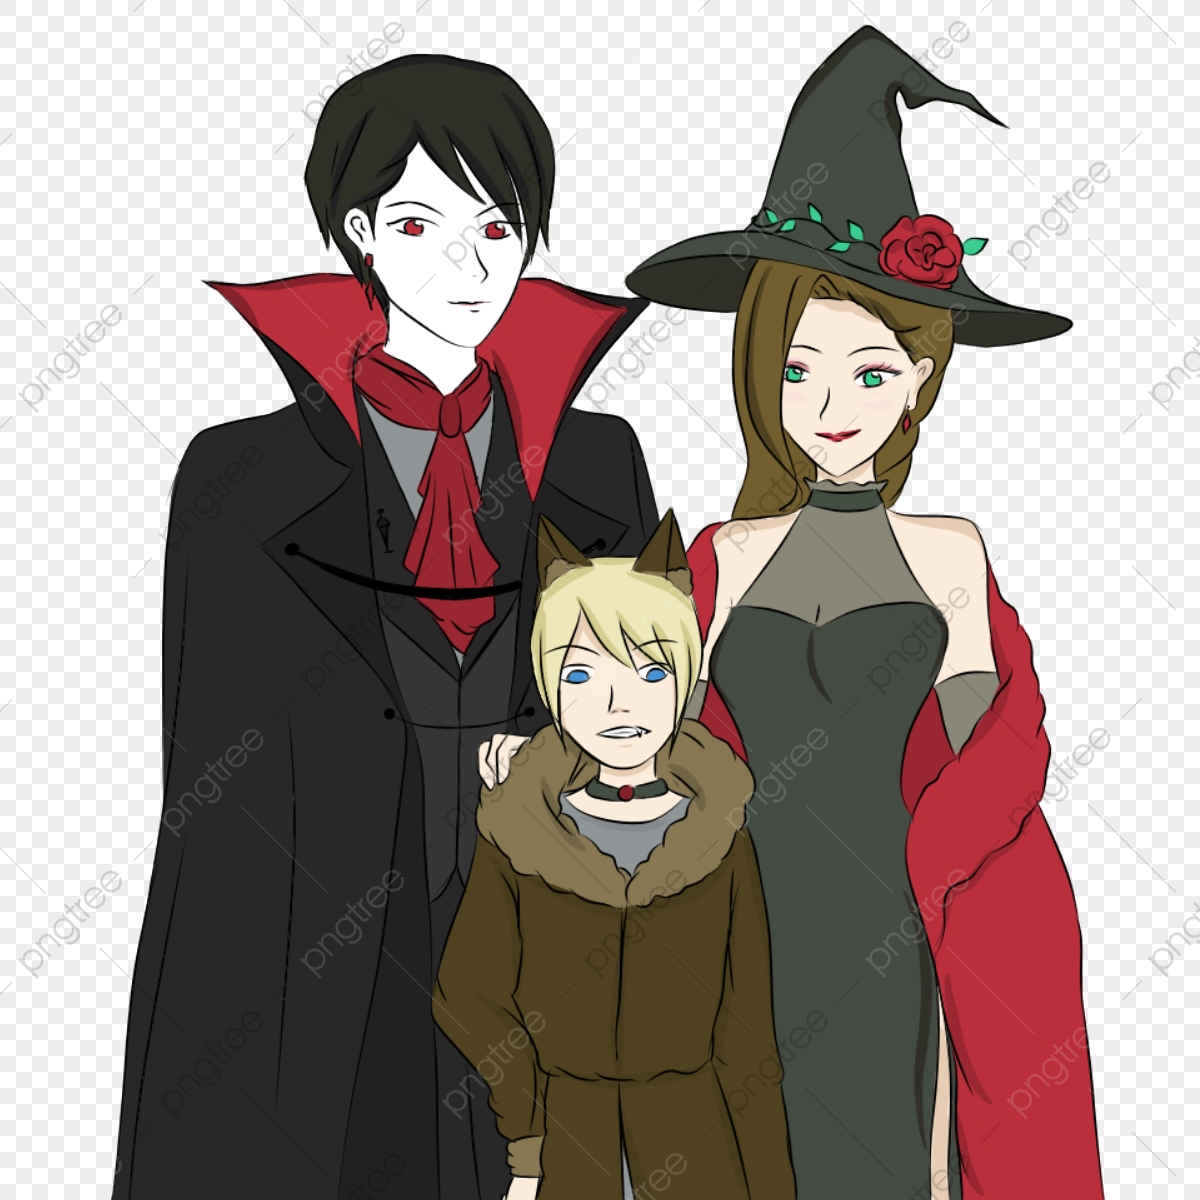 A Family In Halloween Vampire Witch And Werewolf Costumes Halloween Happy Halloween Halloween Costume Png Transparent Clipart Image And Psd File For Free Download